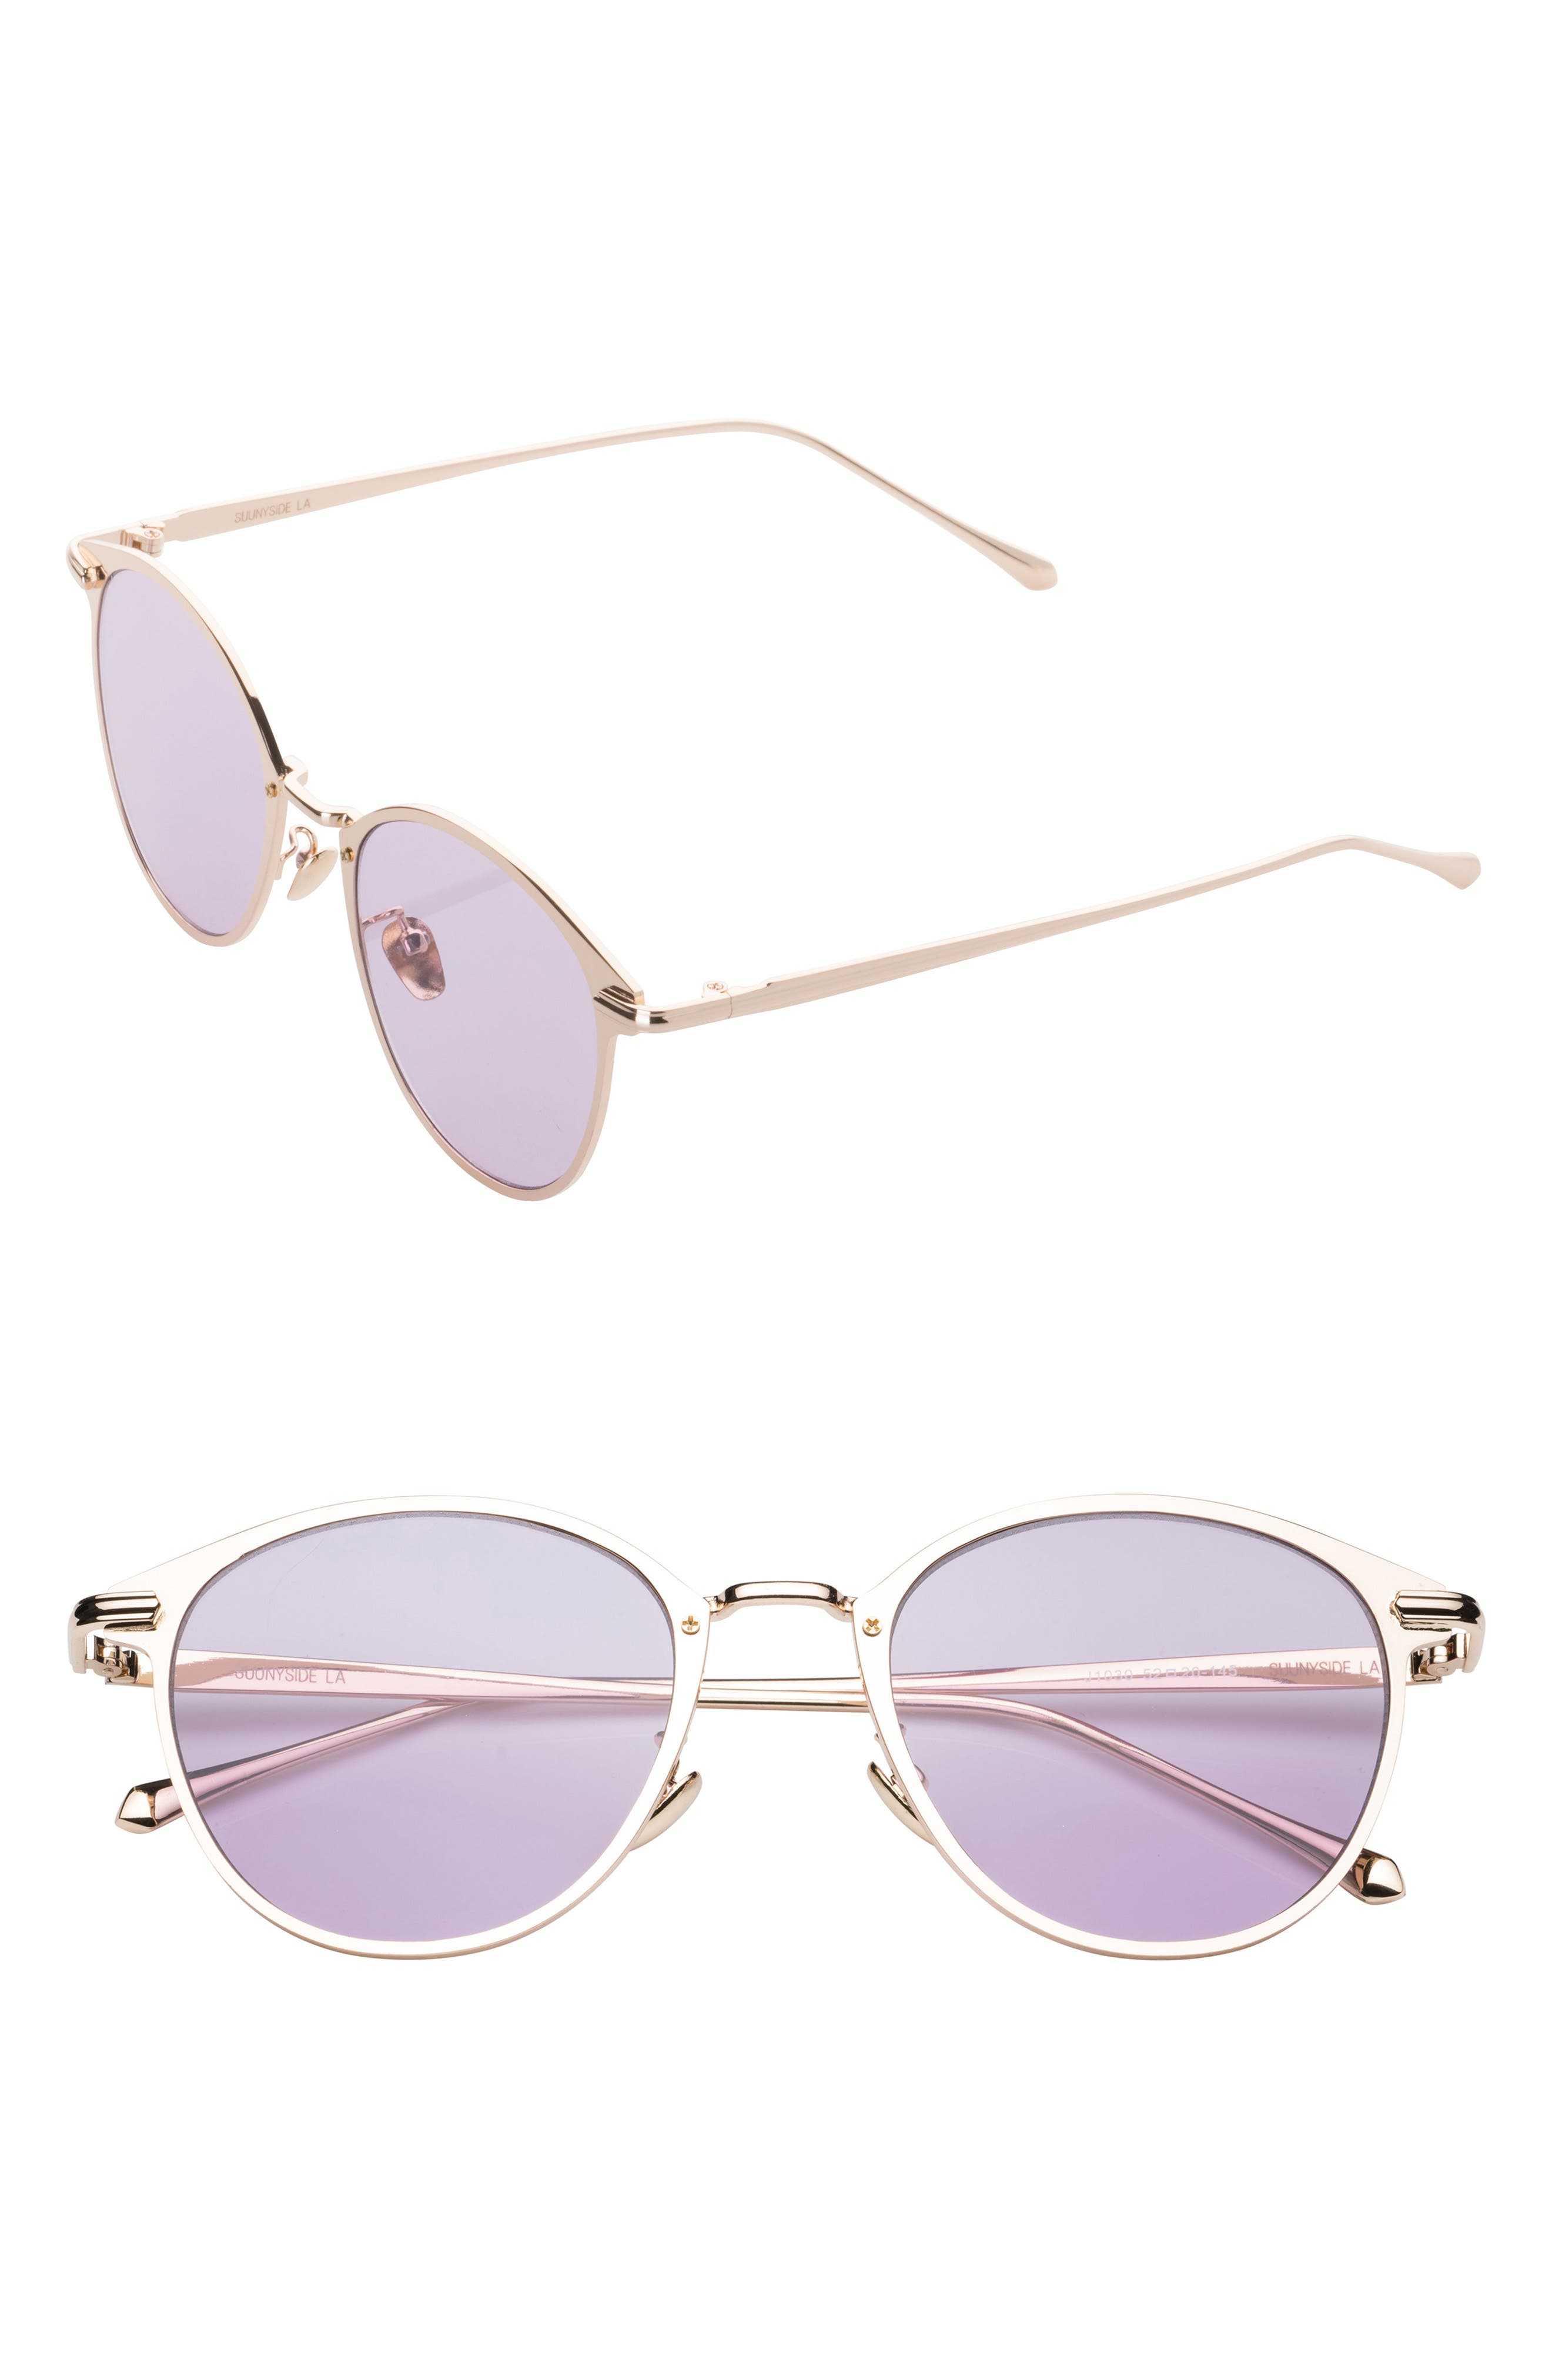 51mm Oxford Sunglasses,                         Main,                         color, Pink